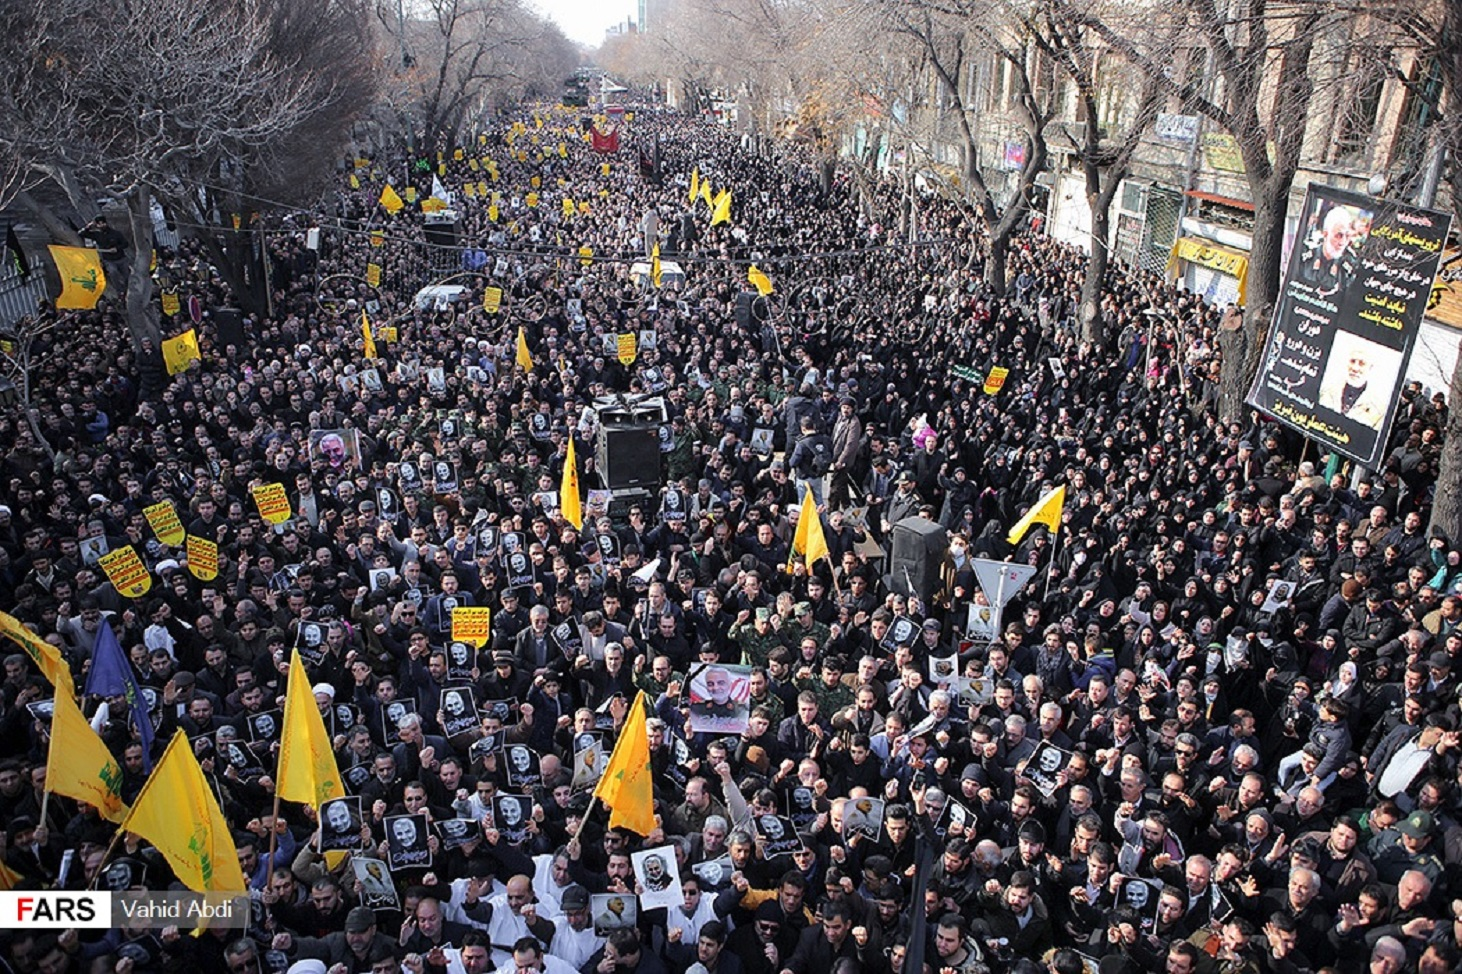 demonstrations_in_iran_over_the_death_of_qasem_soleimani